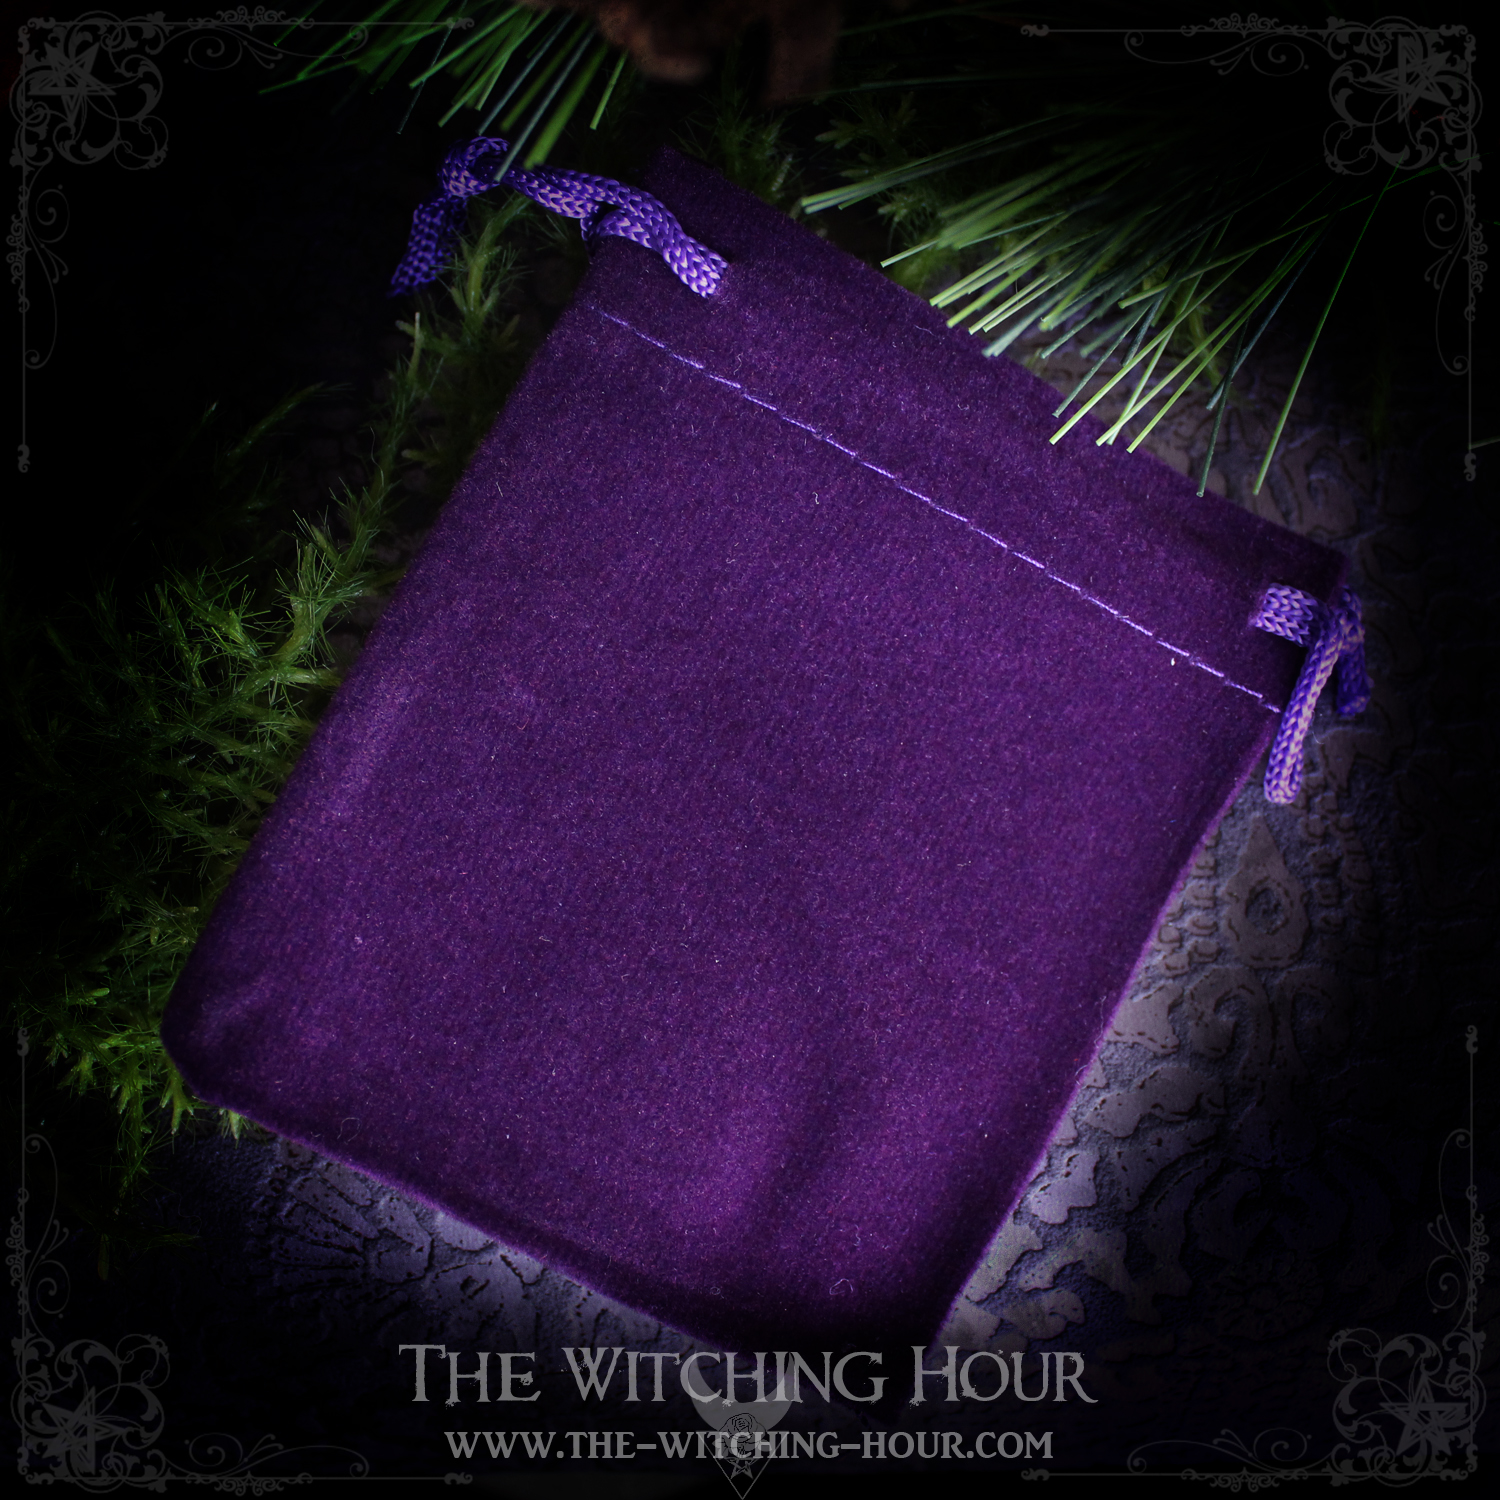 The Witching Hour velvel pouch